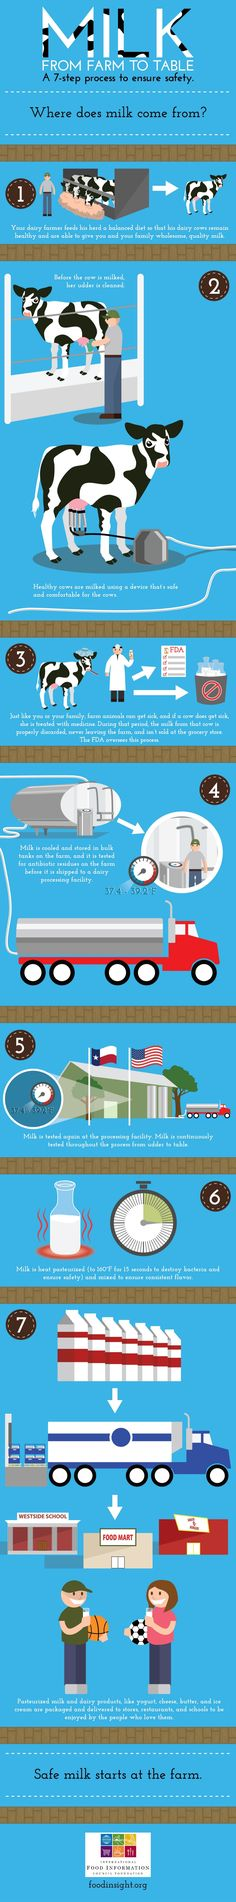 Milk from Farm to Table: A 7-step process to ensure safety. #junedairymonth